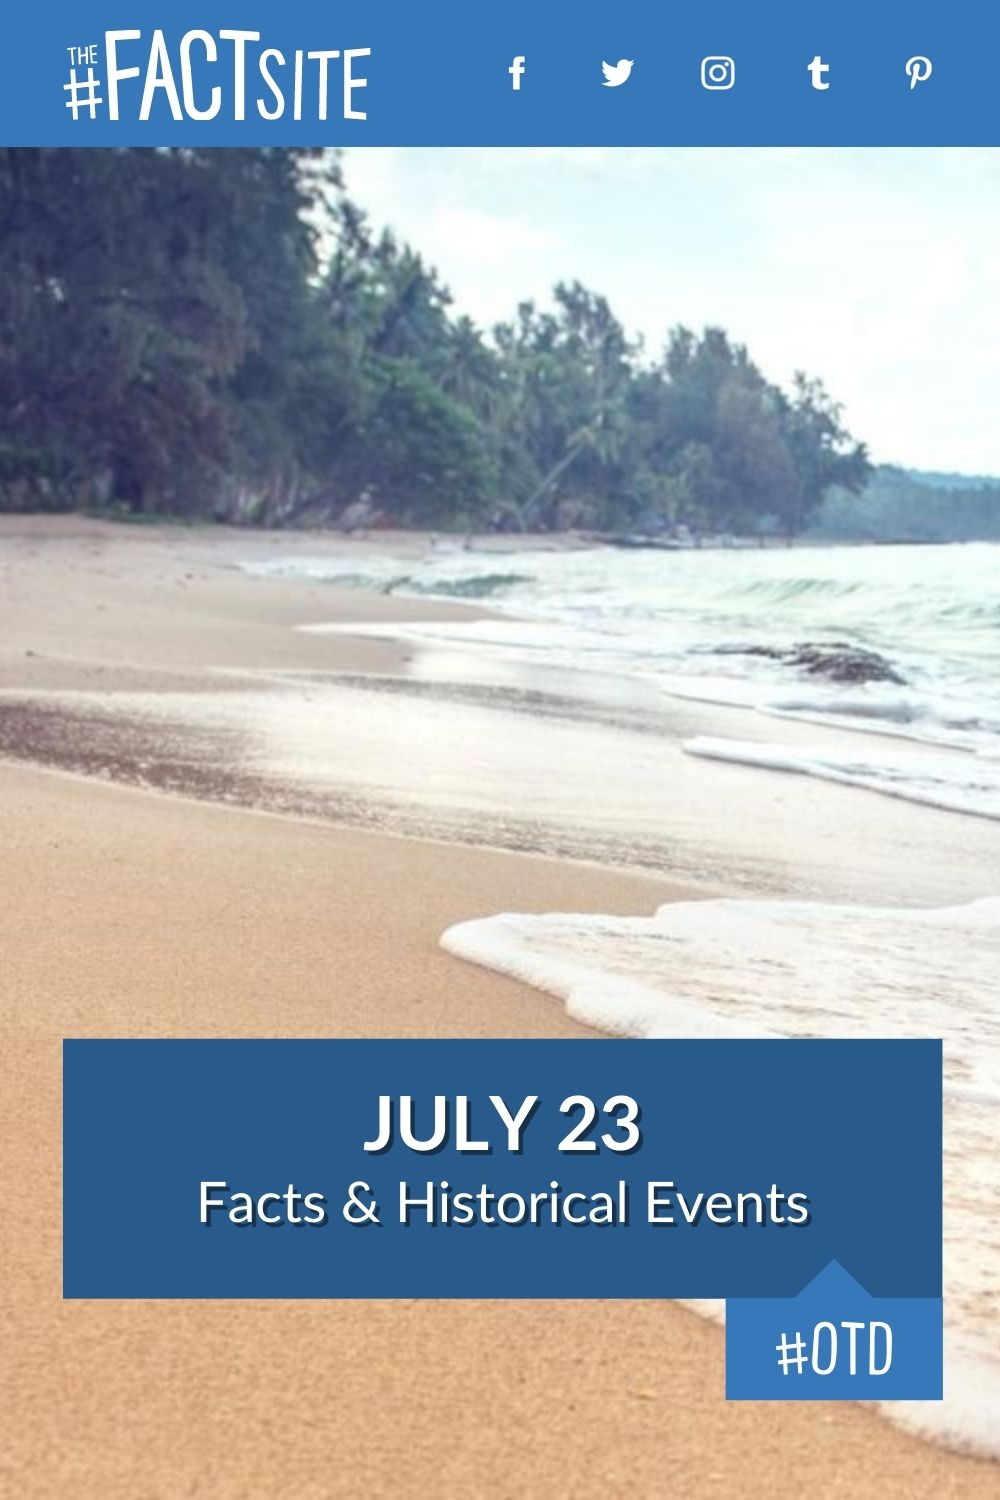 Facts & Historic Events That Happened on July 23